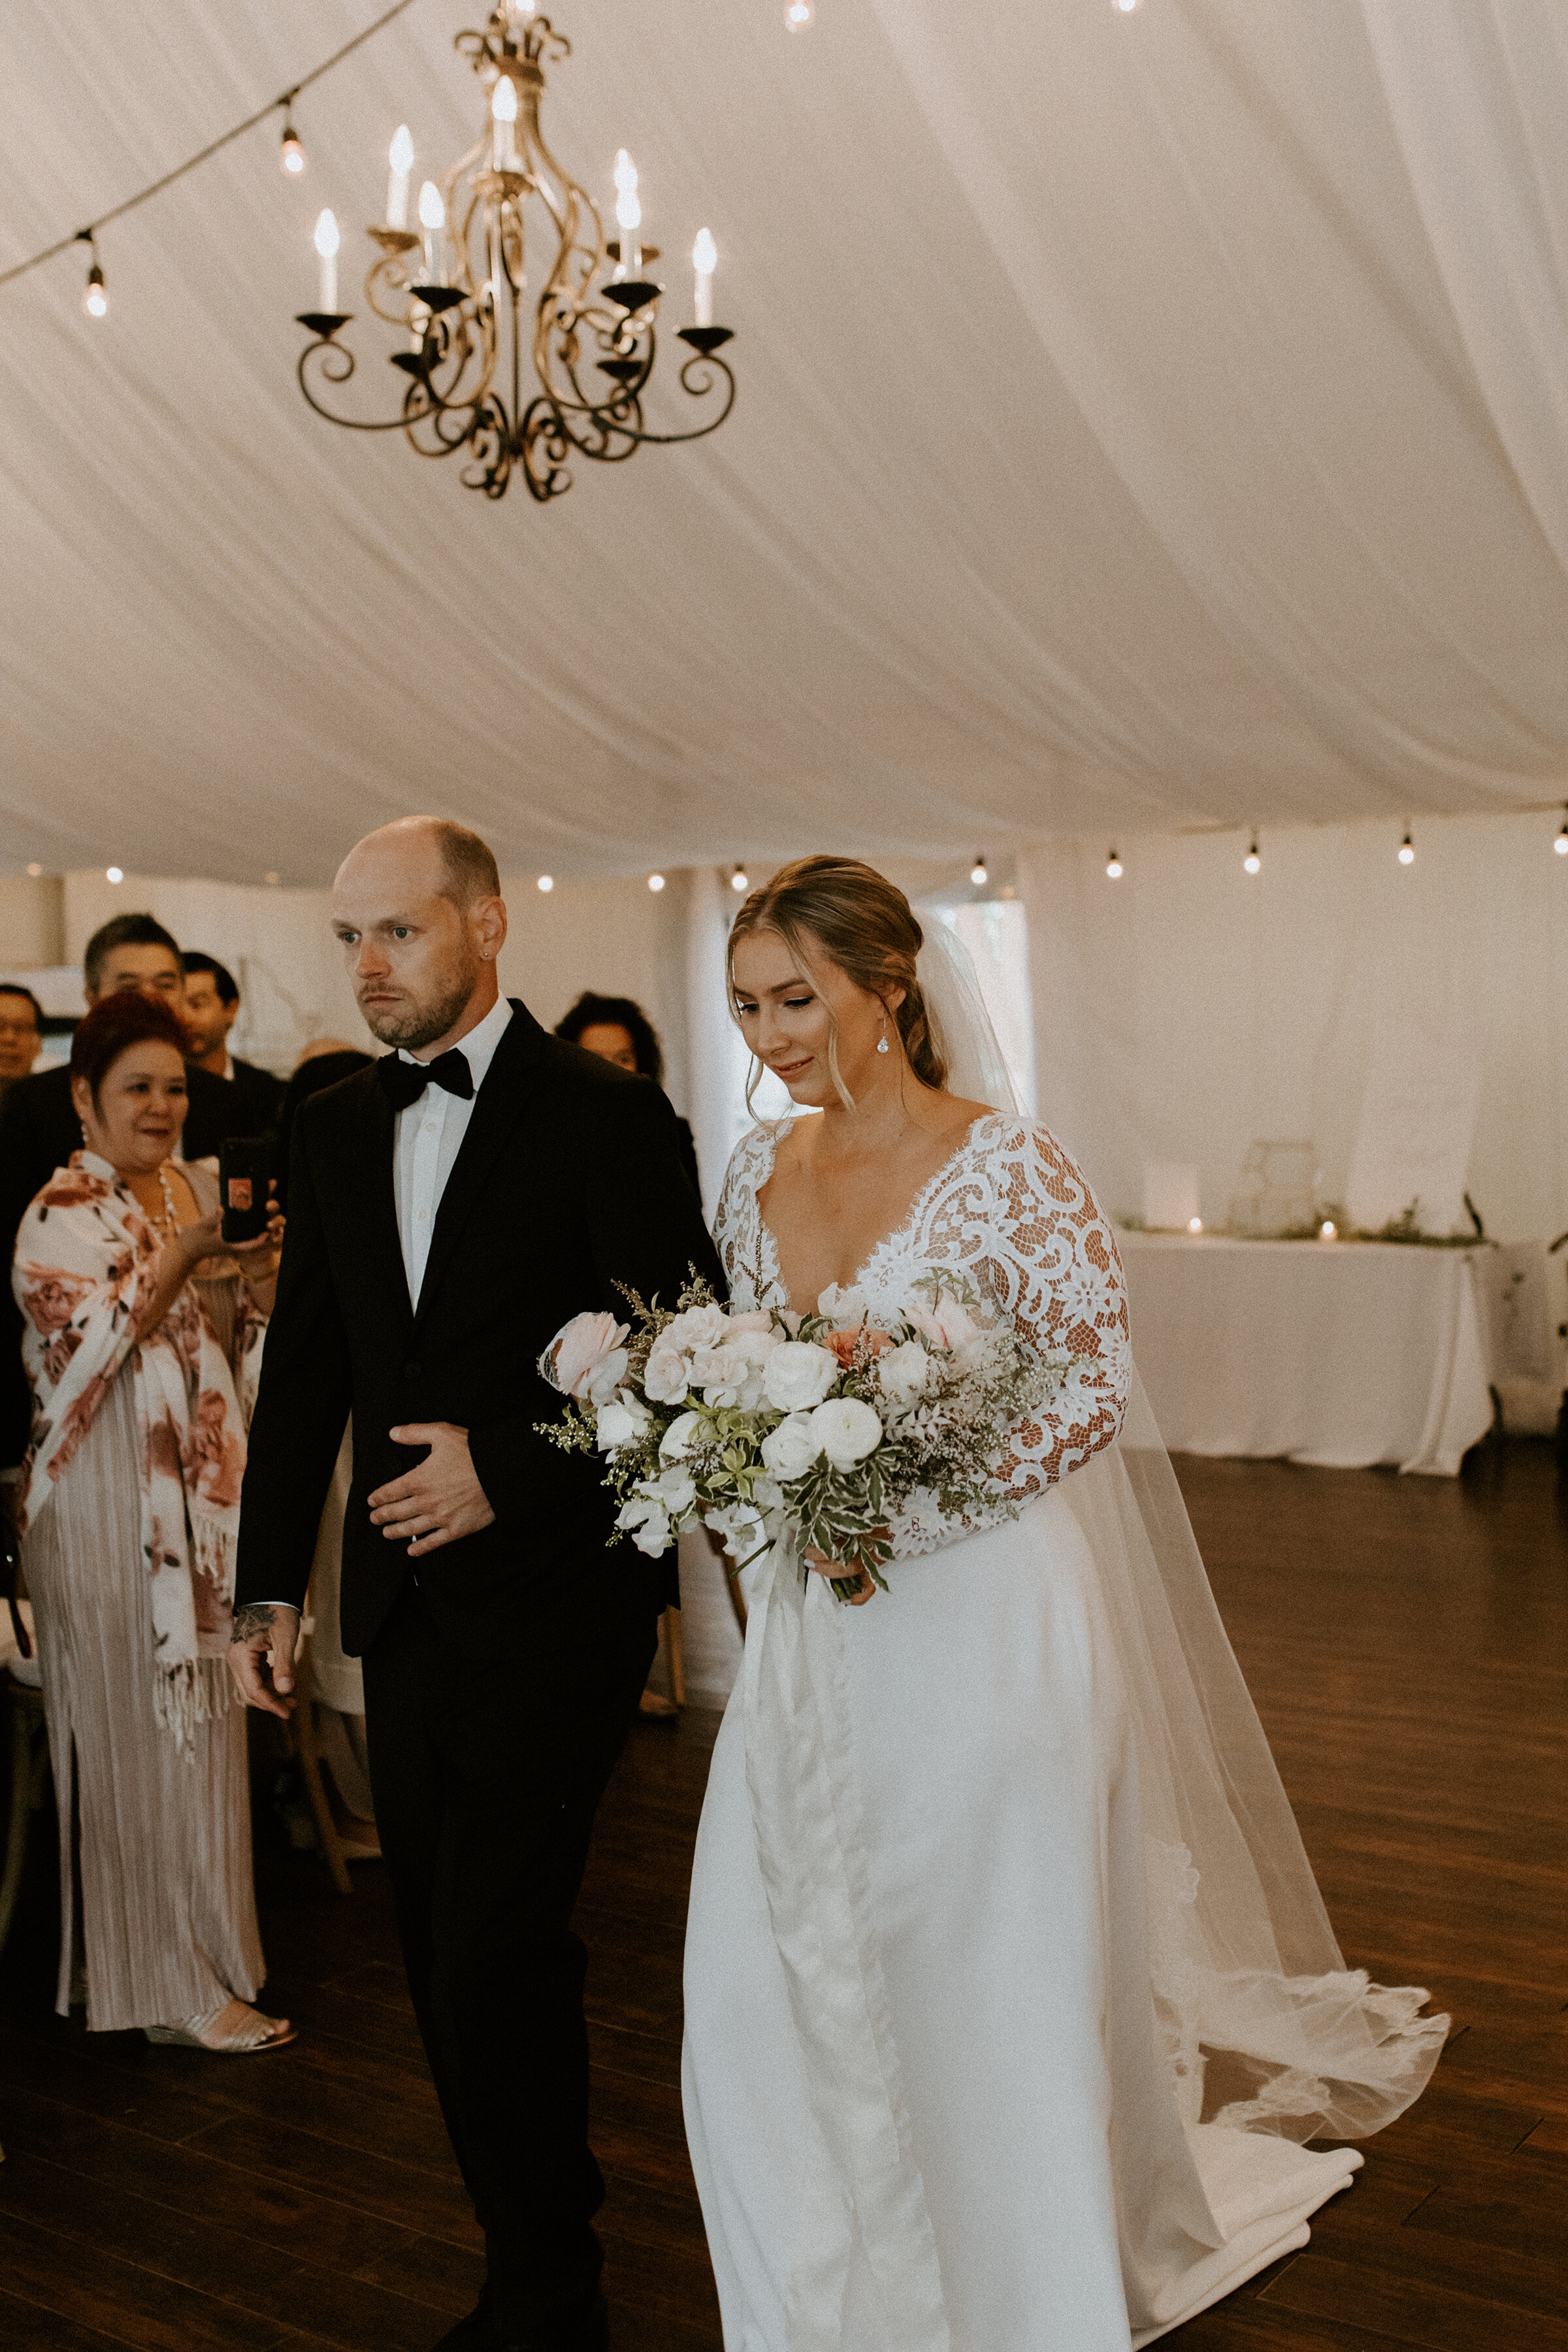 Vintage Glamour Meets Chic Romance at Meadow Muse // Stacey & Michael - on the Bronte Bride